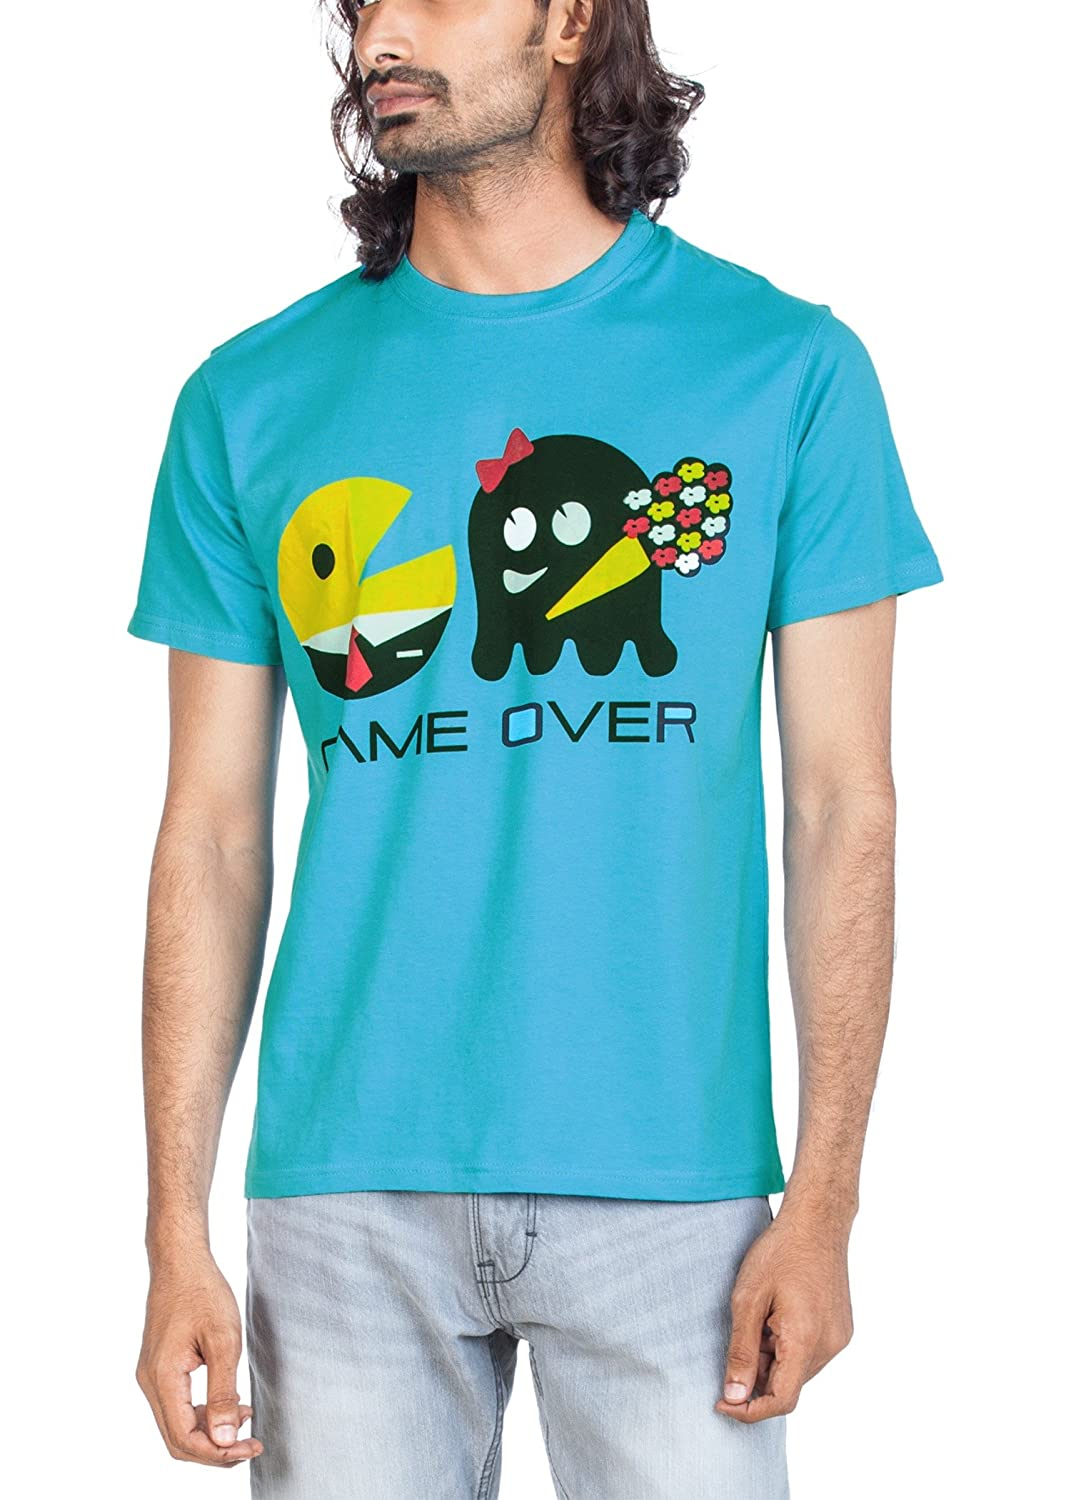 fa1ffc0c2e2 Zovi Pac Man Game Over Blue Graphic T-Shirt (10890007002 X-Large)   Amazon.in  Clothing   Accessories